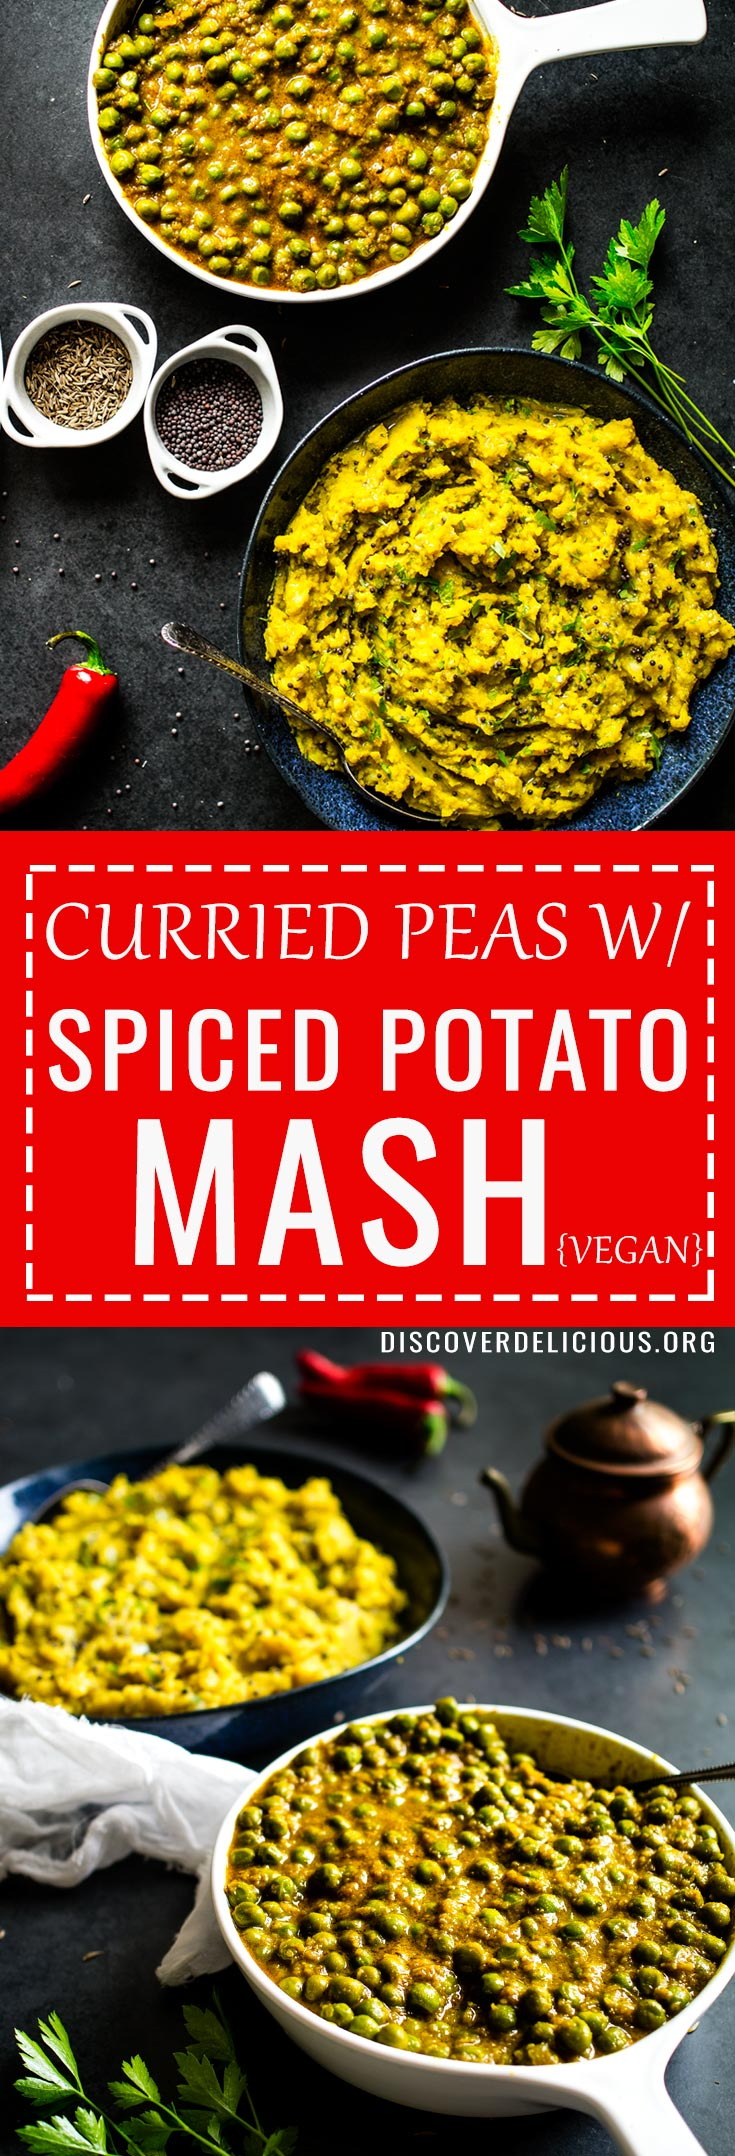 Curried Peas w/ Spiced Potato Mash = Mattar + Aloo Masala! Vegan Indian food at it's finest. Accidentally gluten free too!  #authentic #curry #vegetarian #vegetable #recipes #recipe #sides #spicy #glutenfree